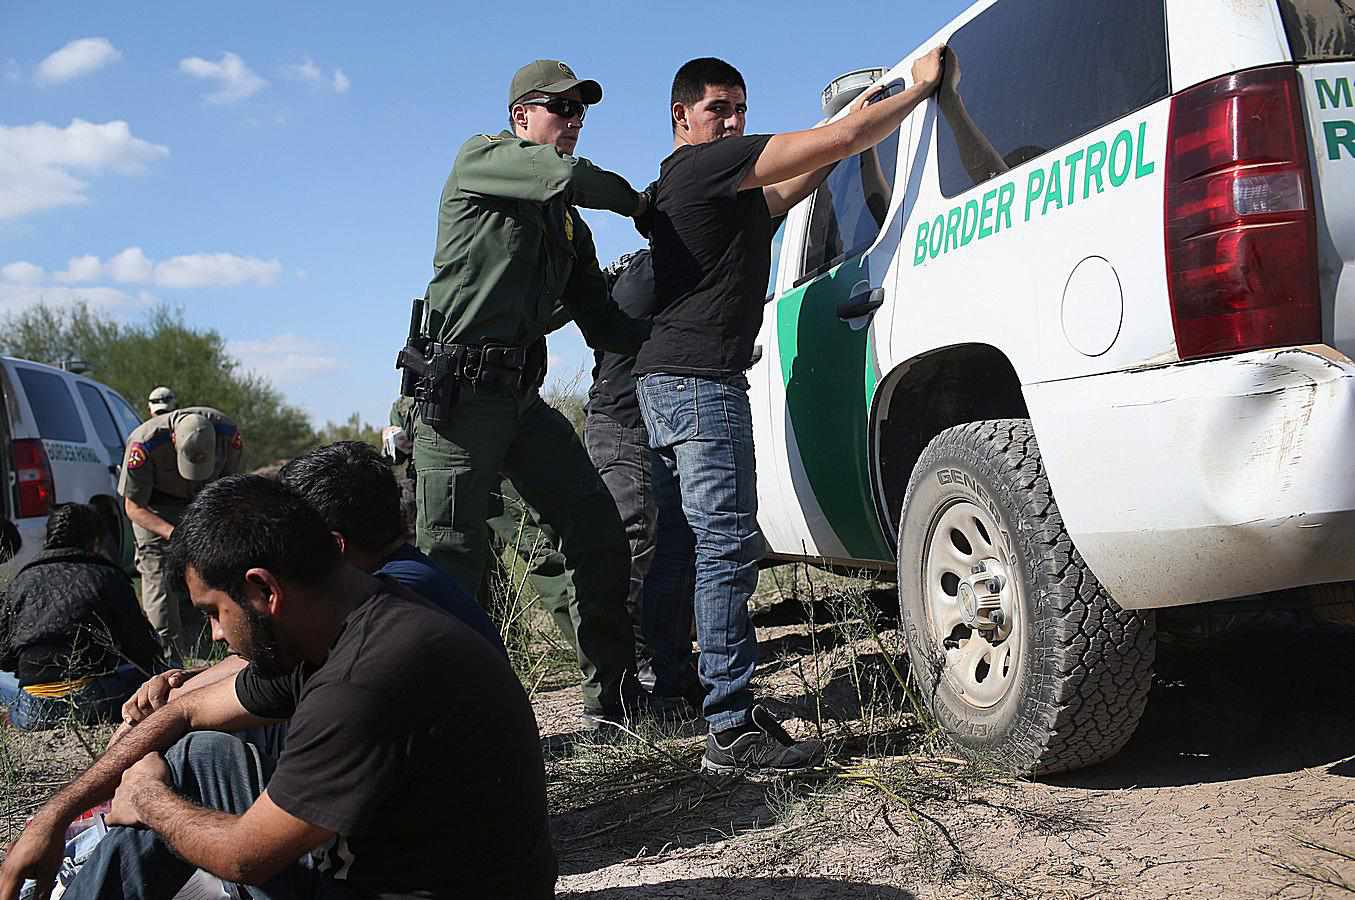 US Border Patrol agents detaining undocumented aliens on Mexican border